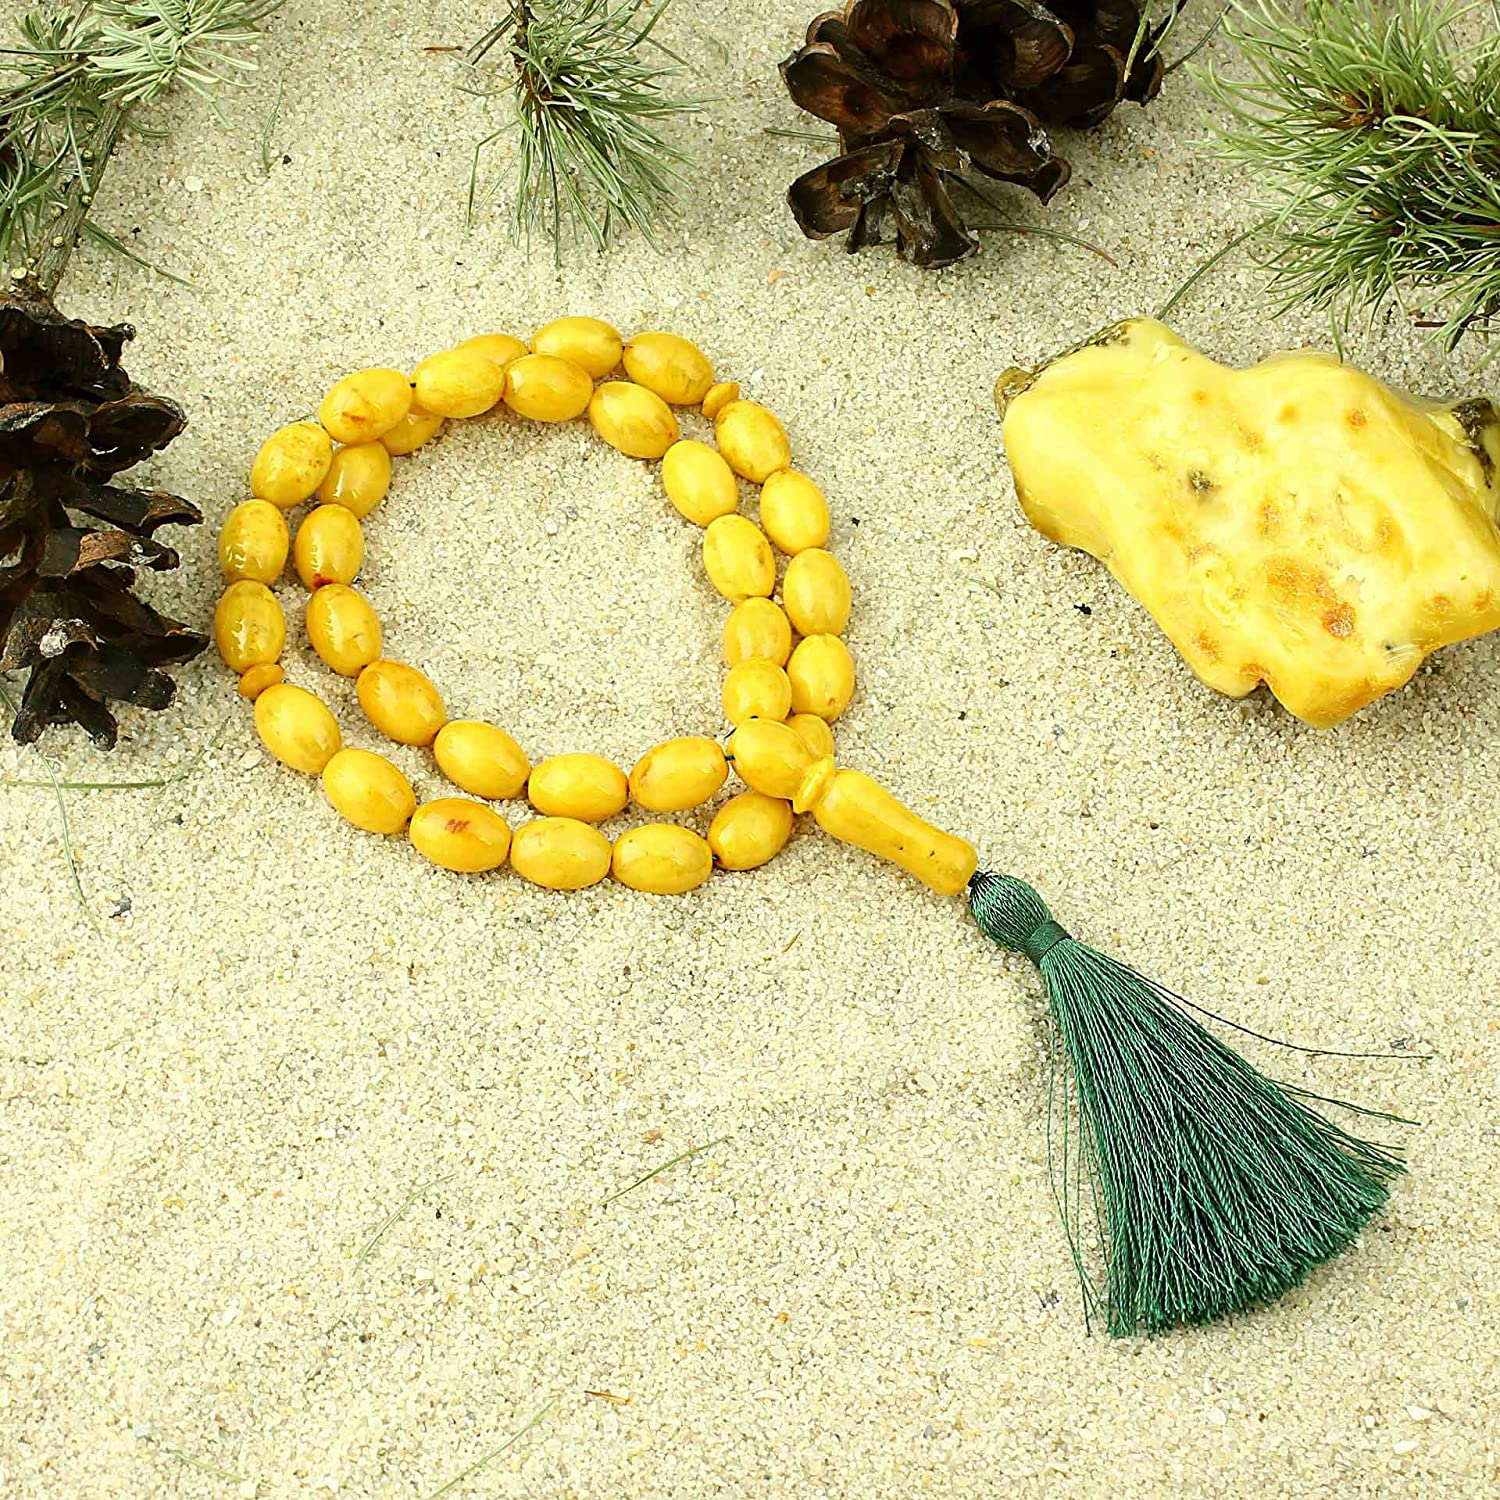 Tasbih 15 GRAMS//New//Lemon with Inclusions Muslim Islamic Rosary 33 Olive Prayer Beads by Baltic Amber Handmade//Genuine Natural Baltic Amber // 8 x 11 mm Authenticity Golden Yellow//Misbaha